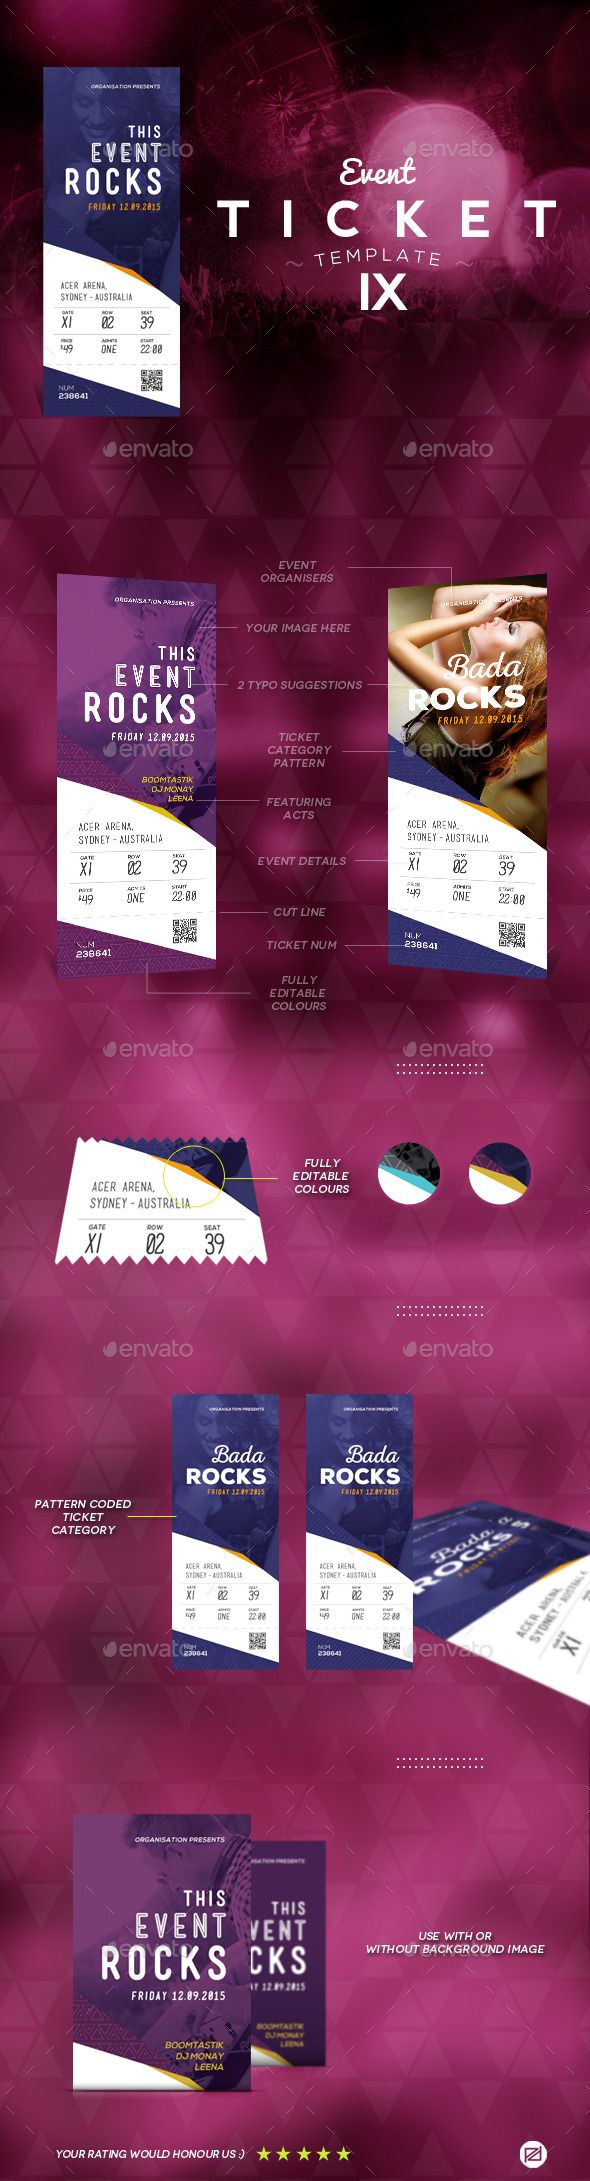 Events Ticket Template 9